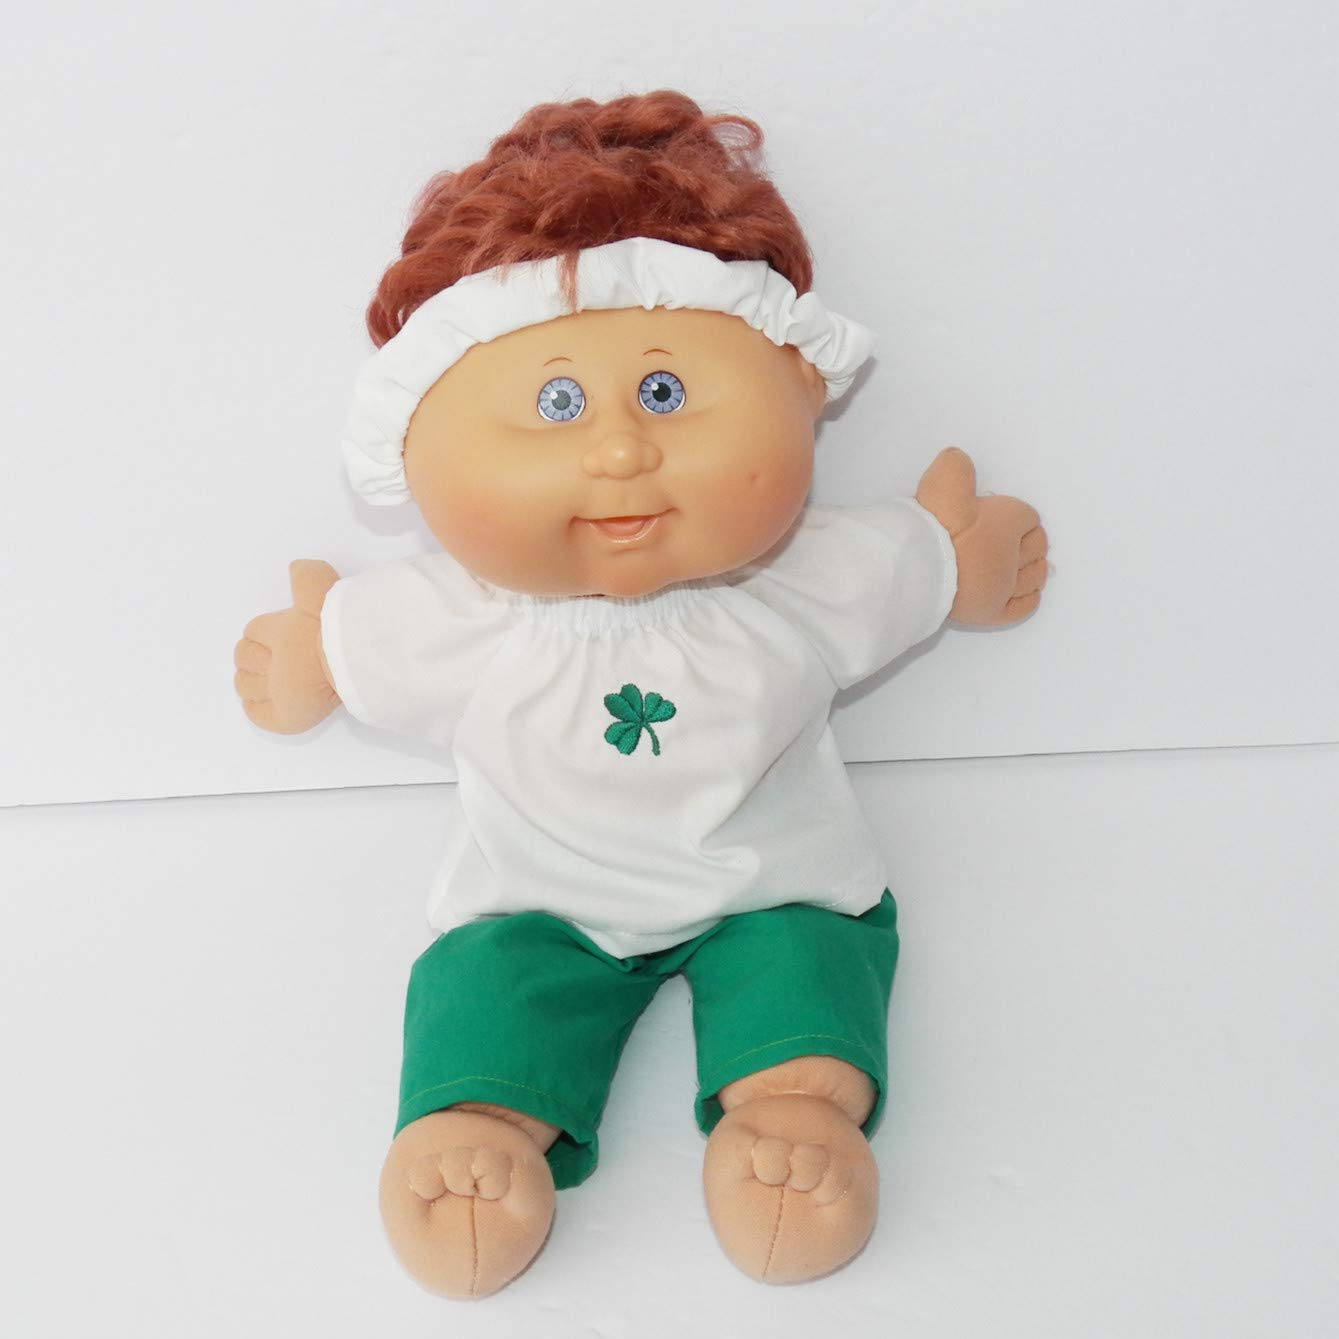 Cabbage Patch Doll Clothes 14 Inch or Preemie Girl Size Shamrock Pants Outfit Clothes Only